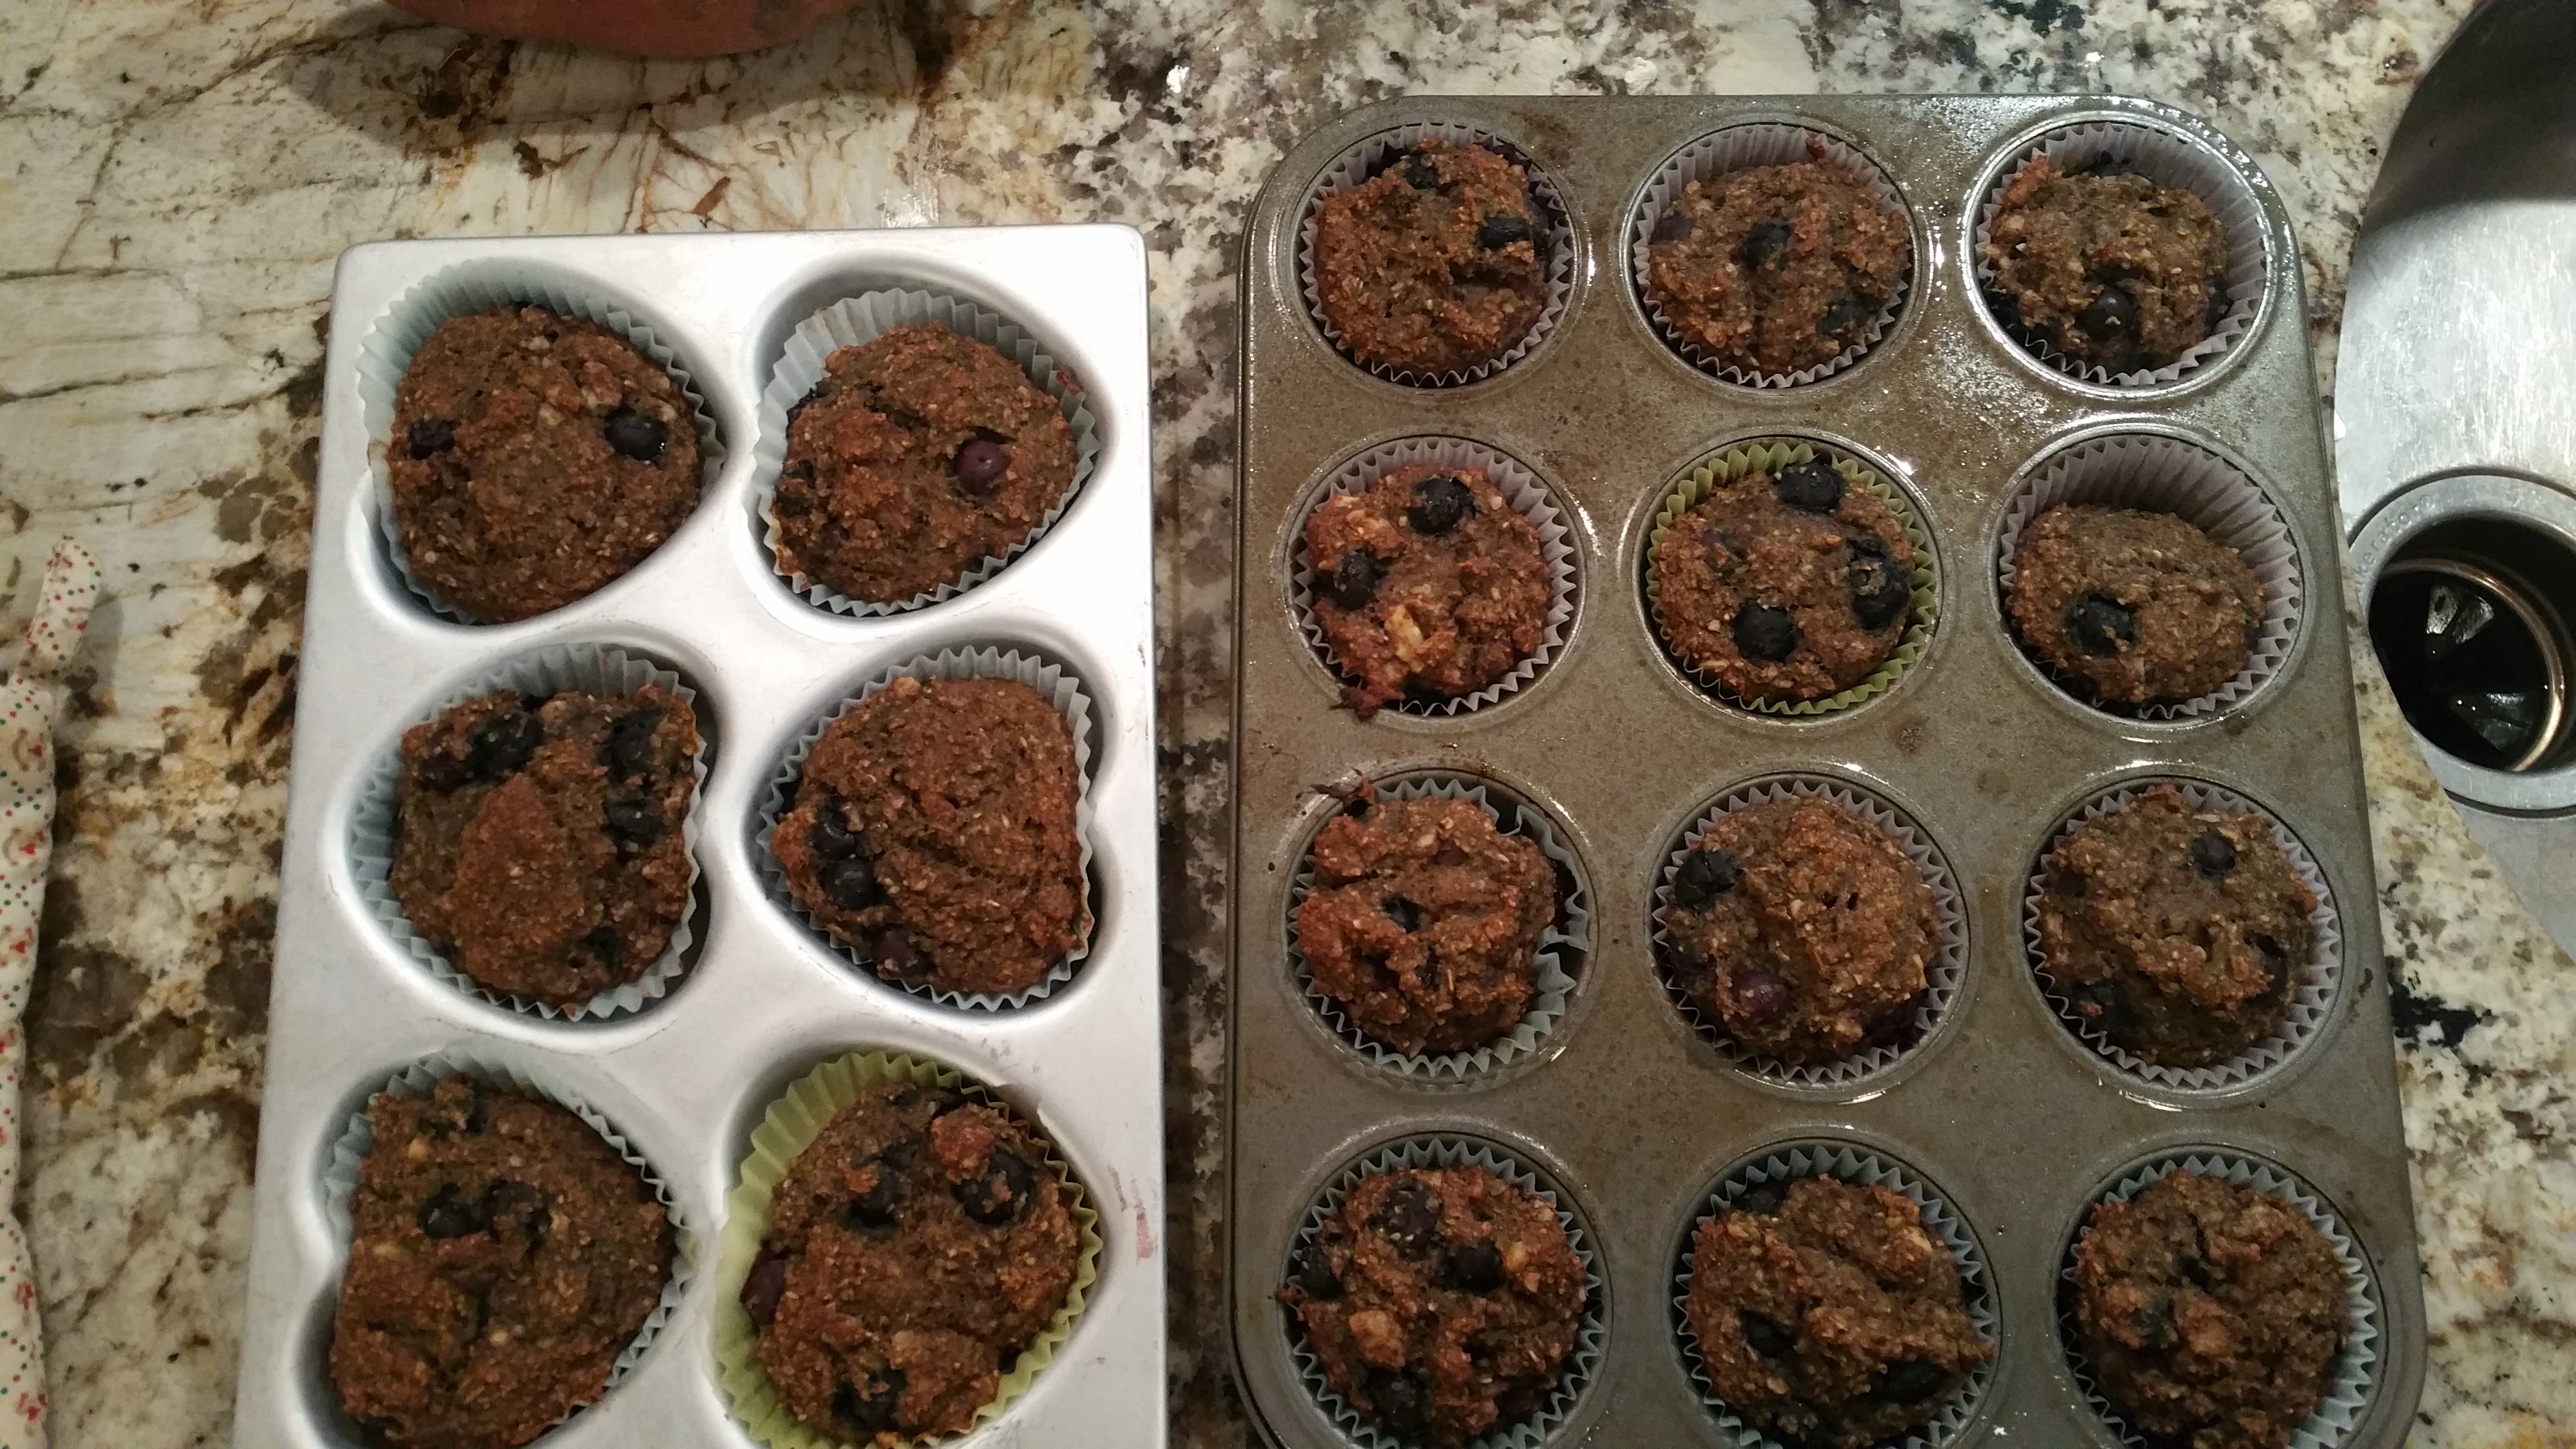 Chef AJ's Banana Oat Muffins, with my tweaks!